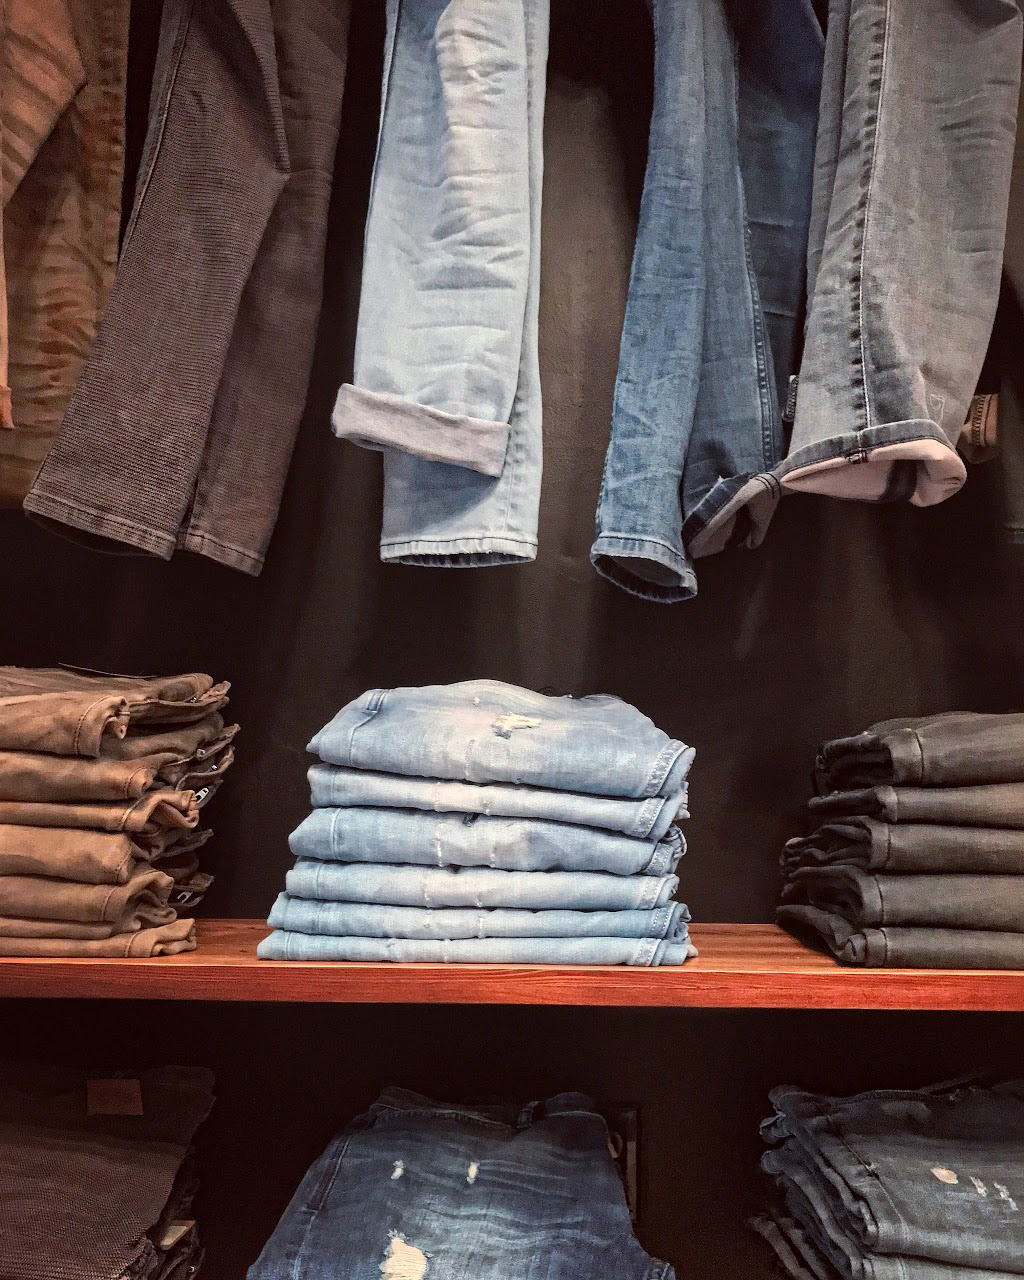 Alchemistry Boutique - clothing store  | Photo 7 of 10 | Address: 124 S Main St, New Hope, PA 18938, USA | Phone: (215) 693-1856